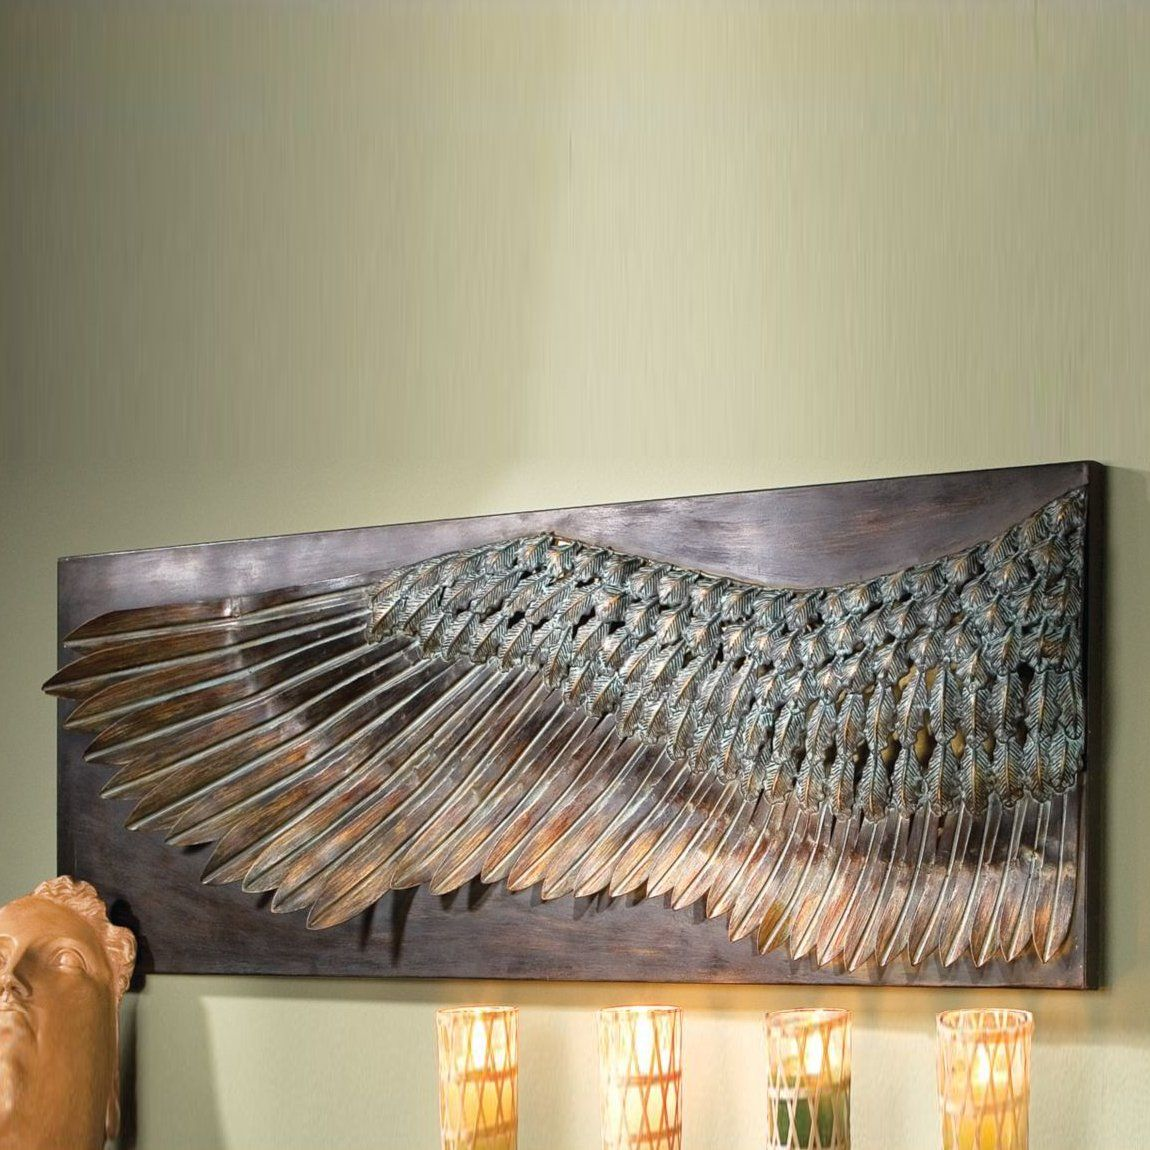 Shop Design Toscano  MH270348 Wing of Icarus Sculptural Metal Wall Frieze at ATG Stores. Browse our metal art, all with free shipping and best price guaranteed.